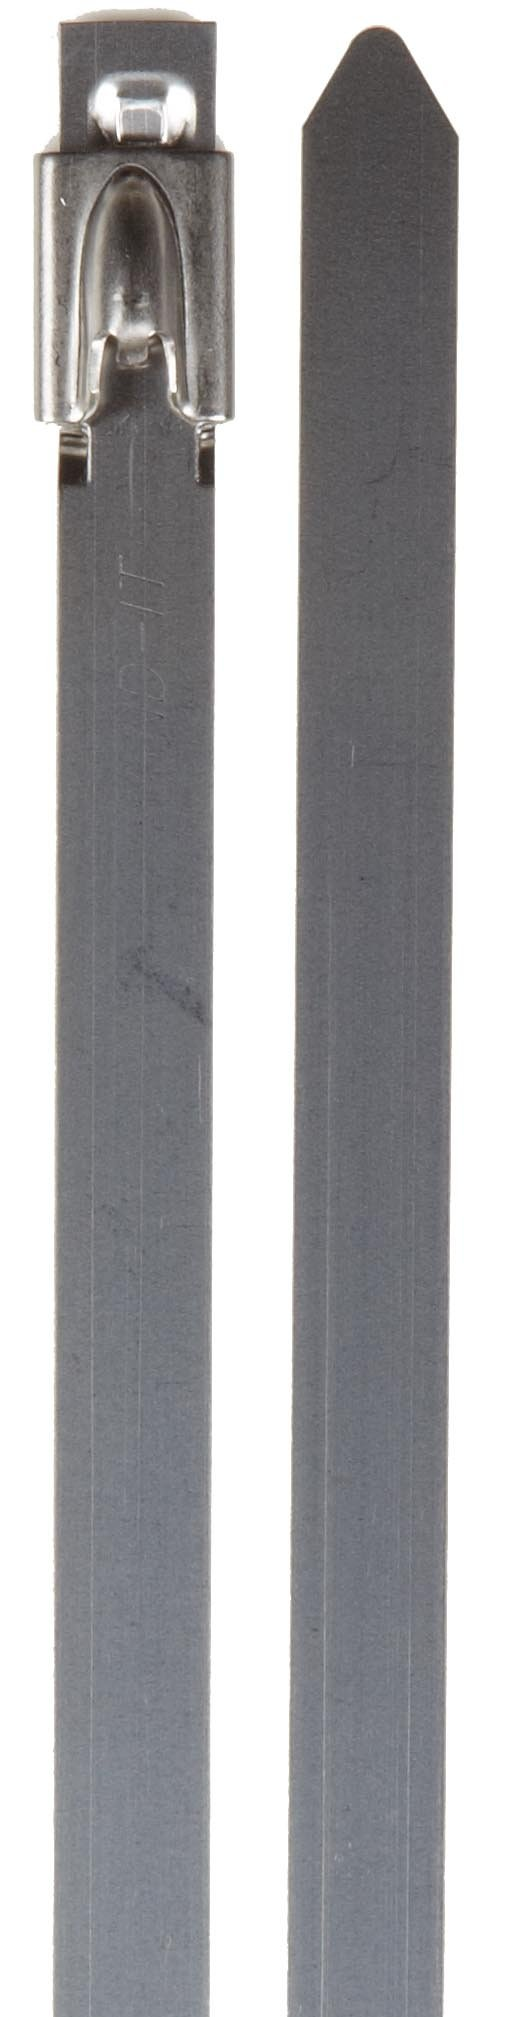 BAND-IT KE1348 Uncoated 304 Stainless Steel Ball-Lok Cable Tie, 5/16'' Width, 14.2'' Length, 0.010'' Thick, 4'' Maximum Diameter, Bag of 100